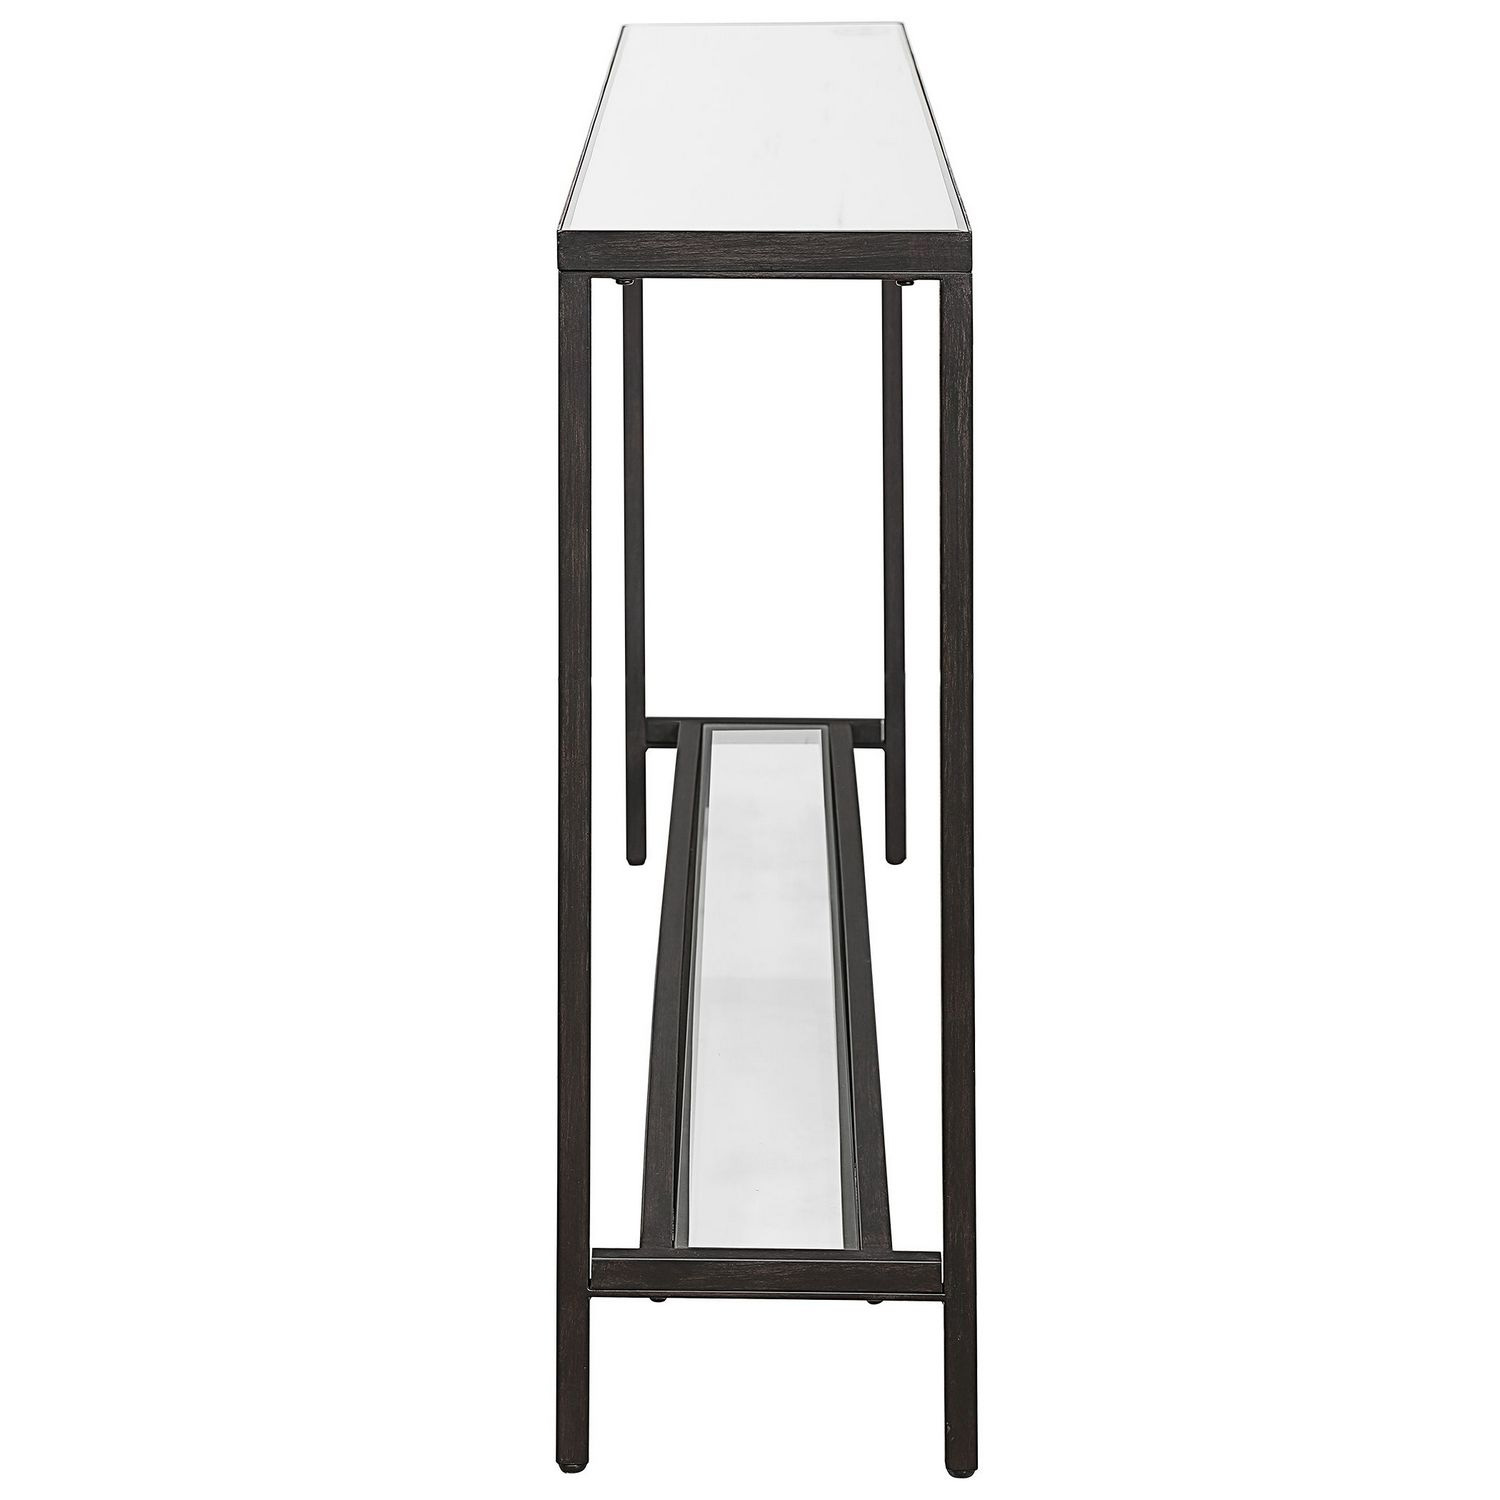 Uttermost Hayley Console Table - Black